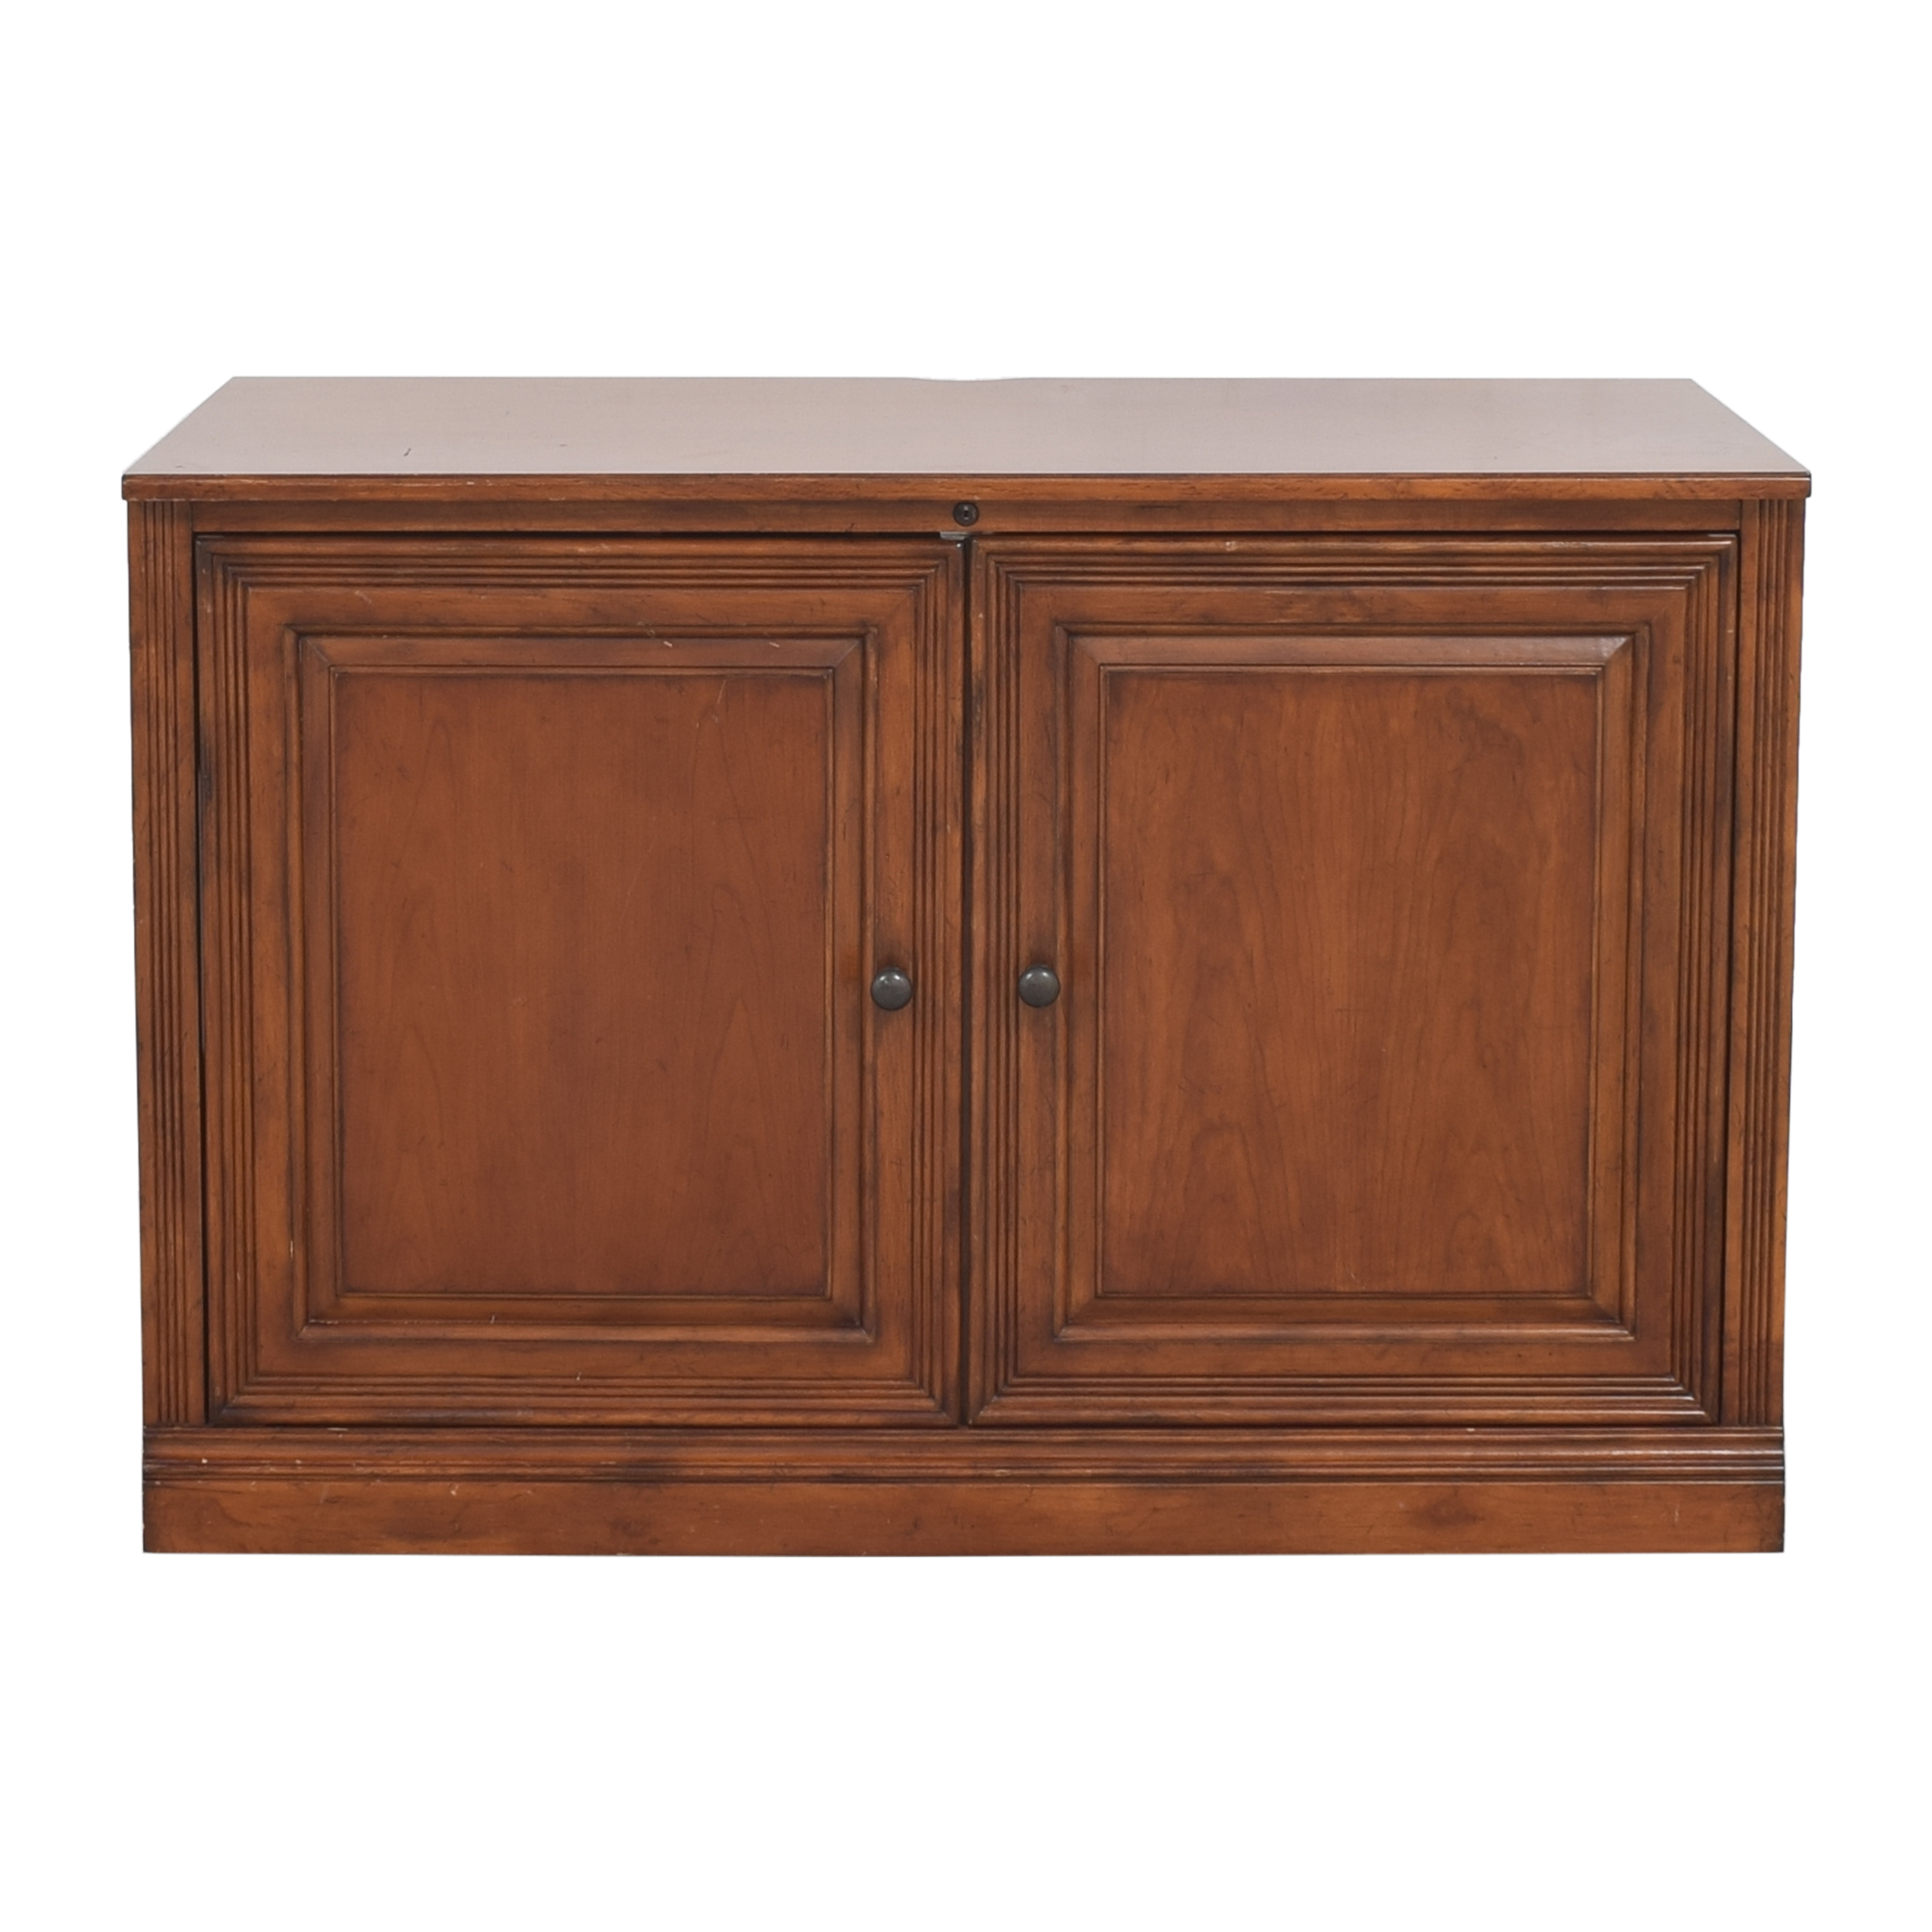 Sligh Furniture Sligh Furniture Home Office Cabinet coupon